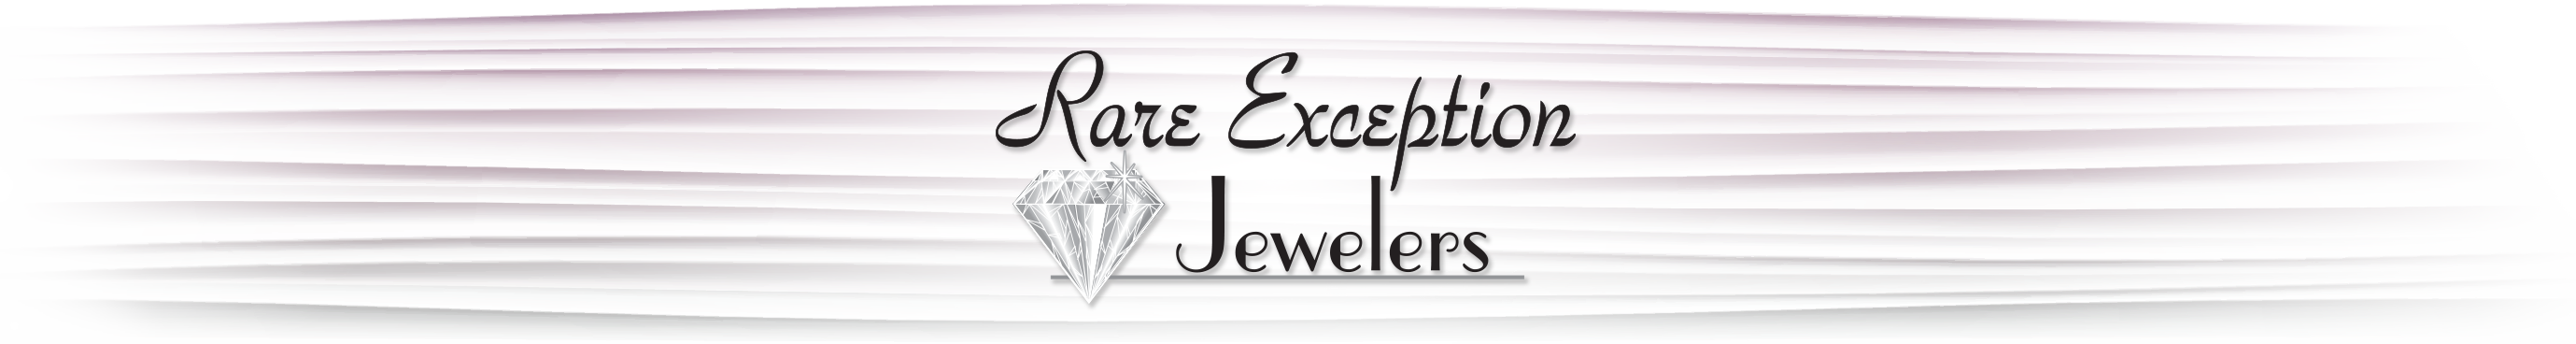 Rare Exception Jewelers Logo